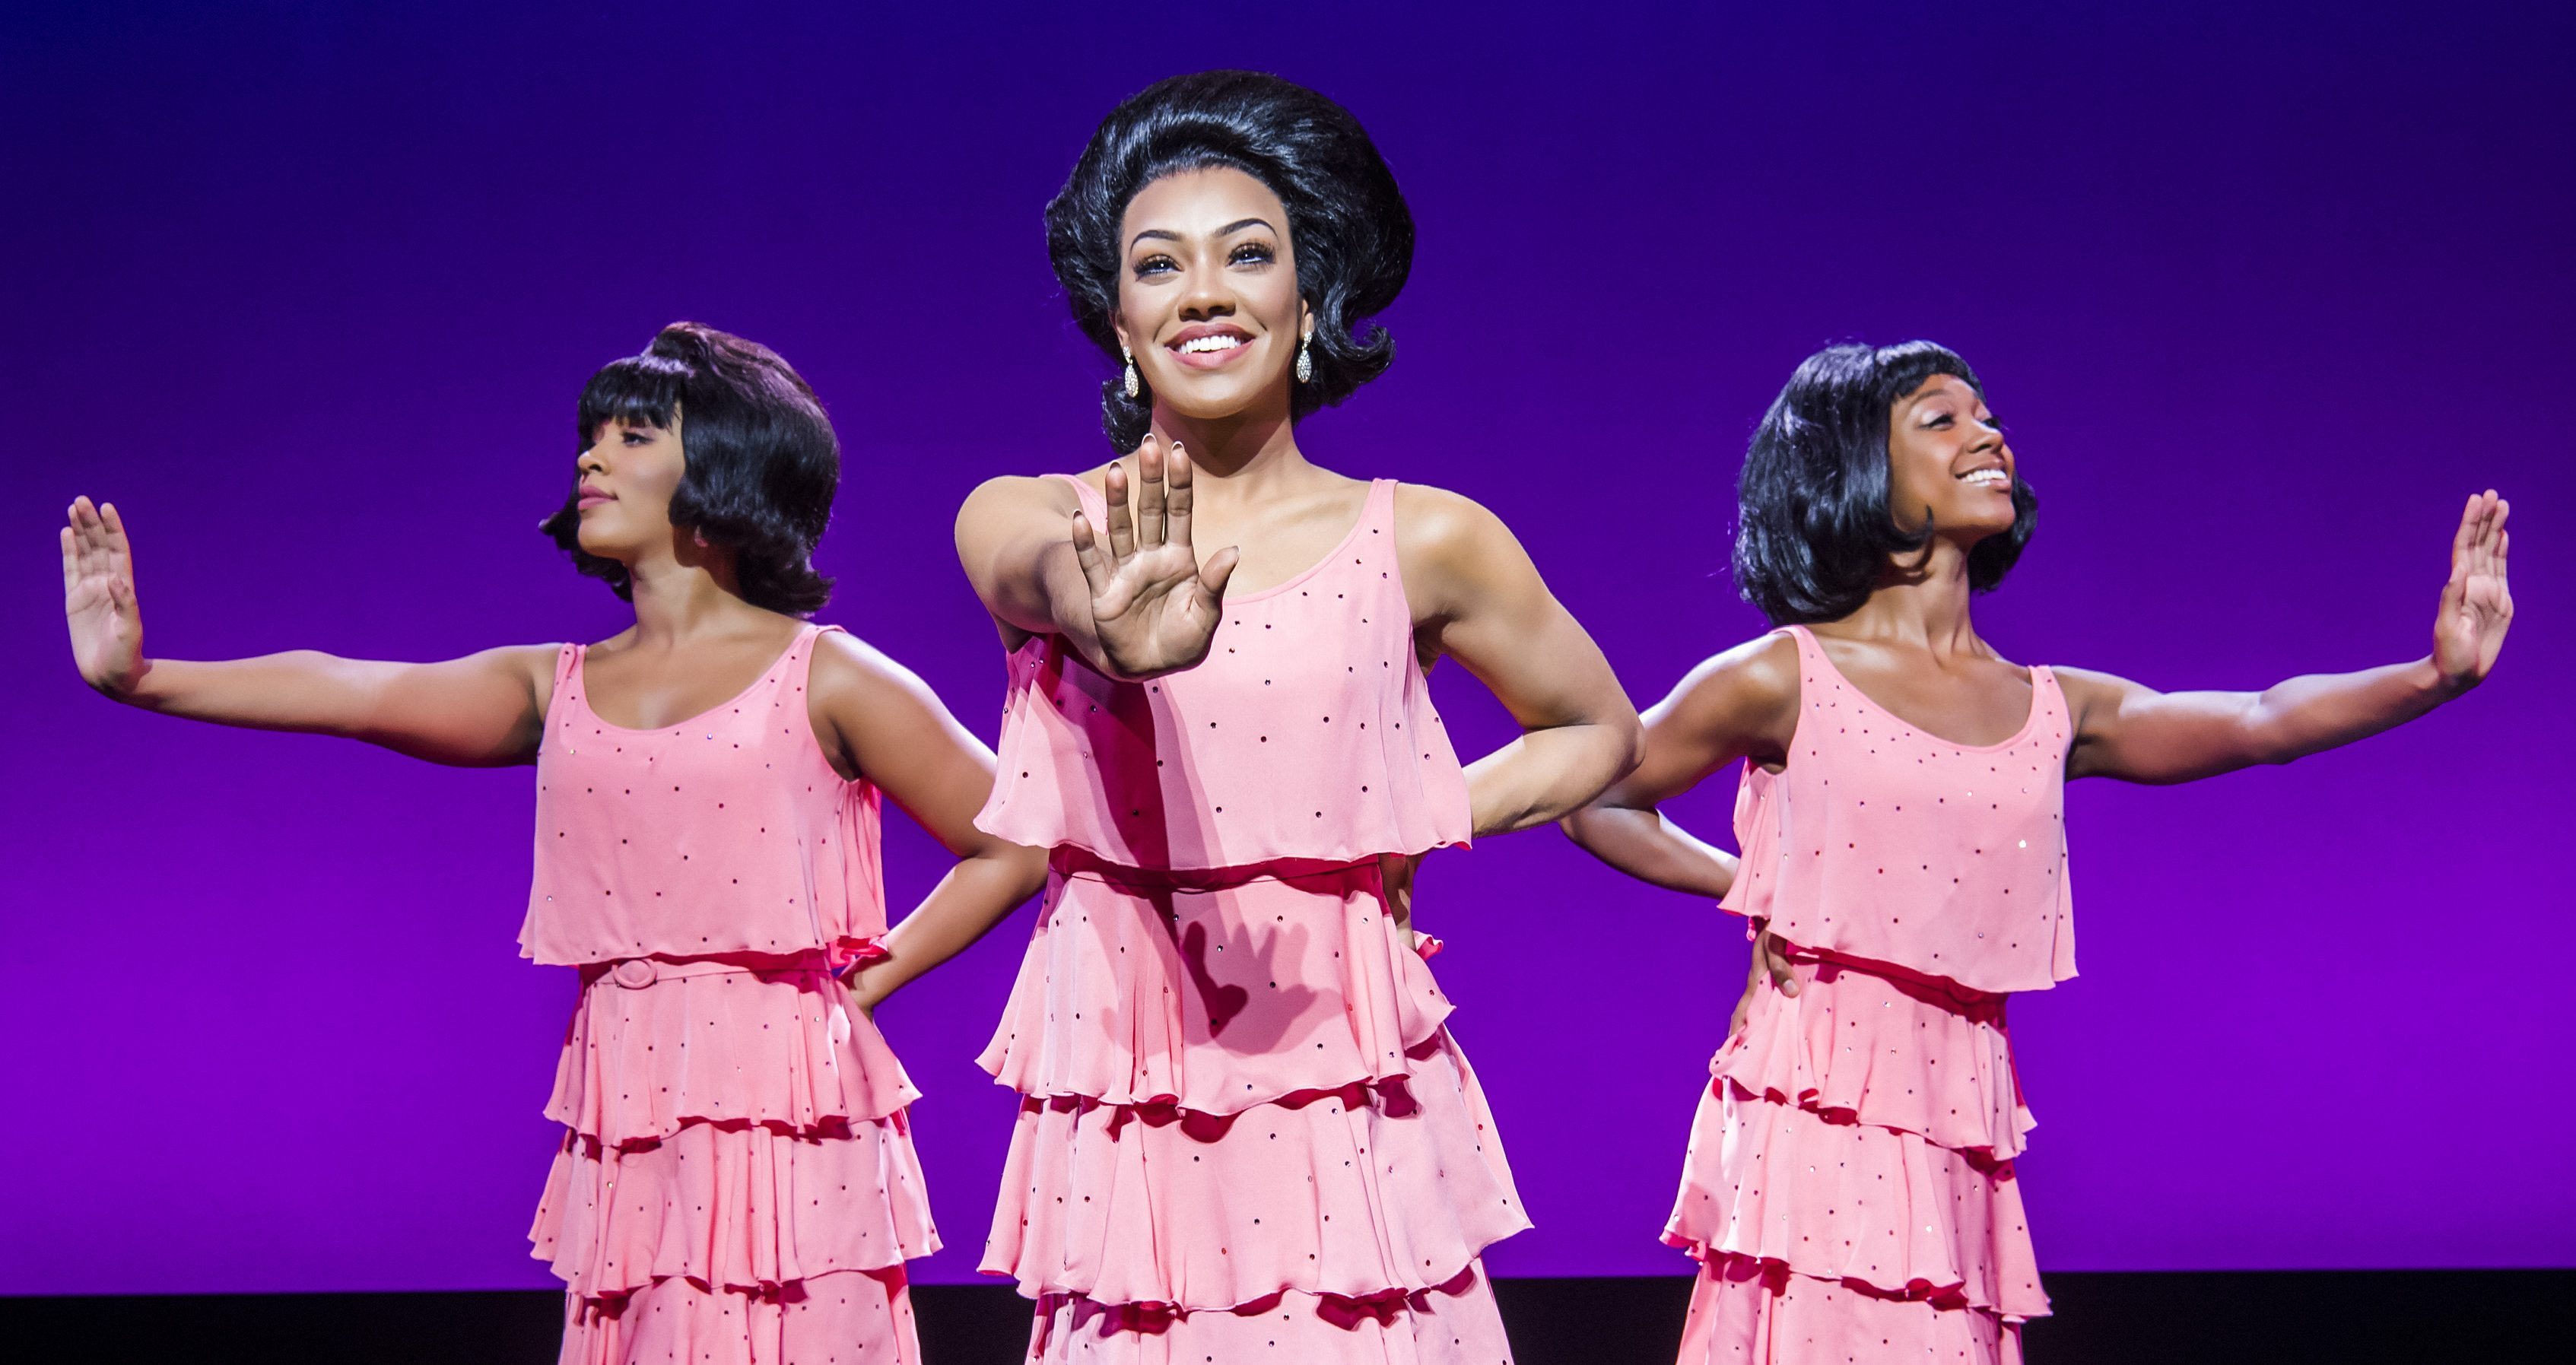 Motown the Musical. Three women in pink dresses, performing as Diana Ross and The Supremes in the theatre production, Motown the Musical. Photo by Tristram Kenton.